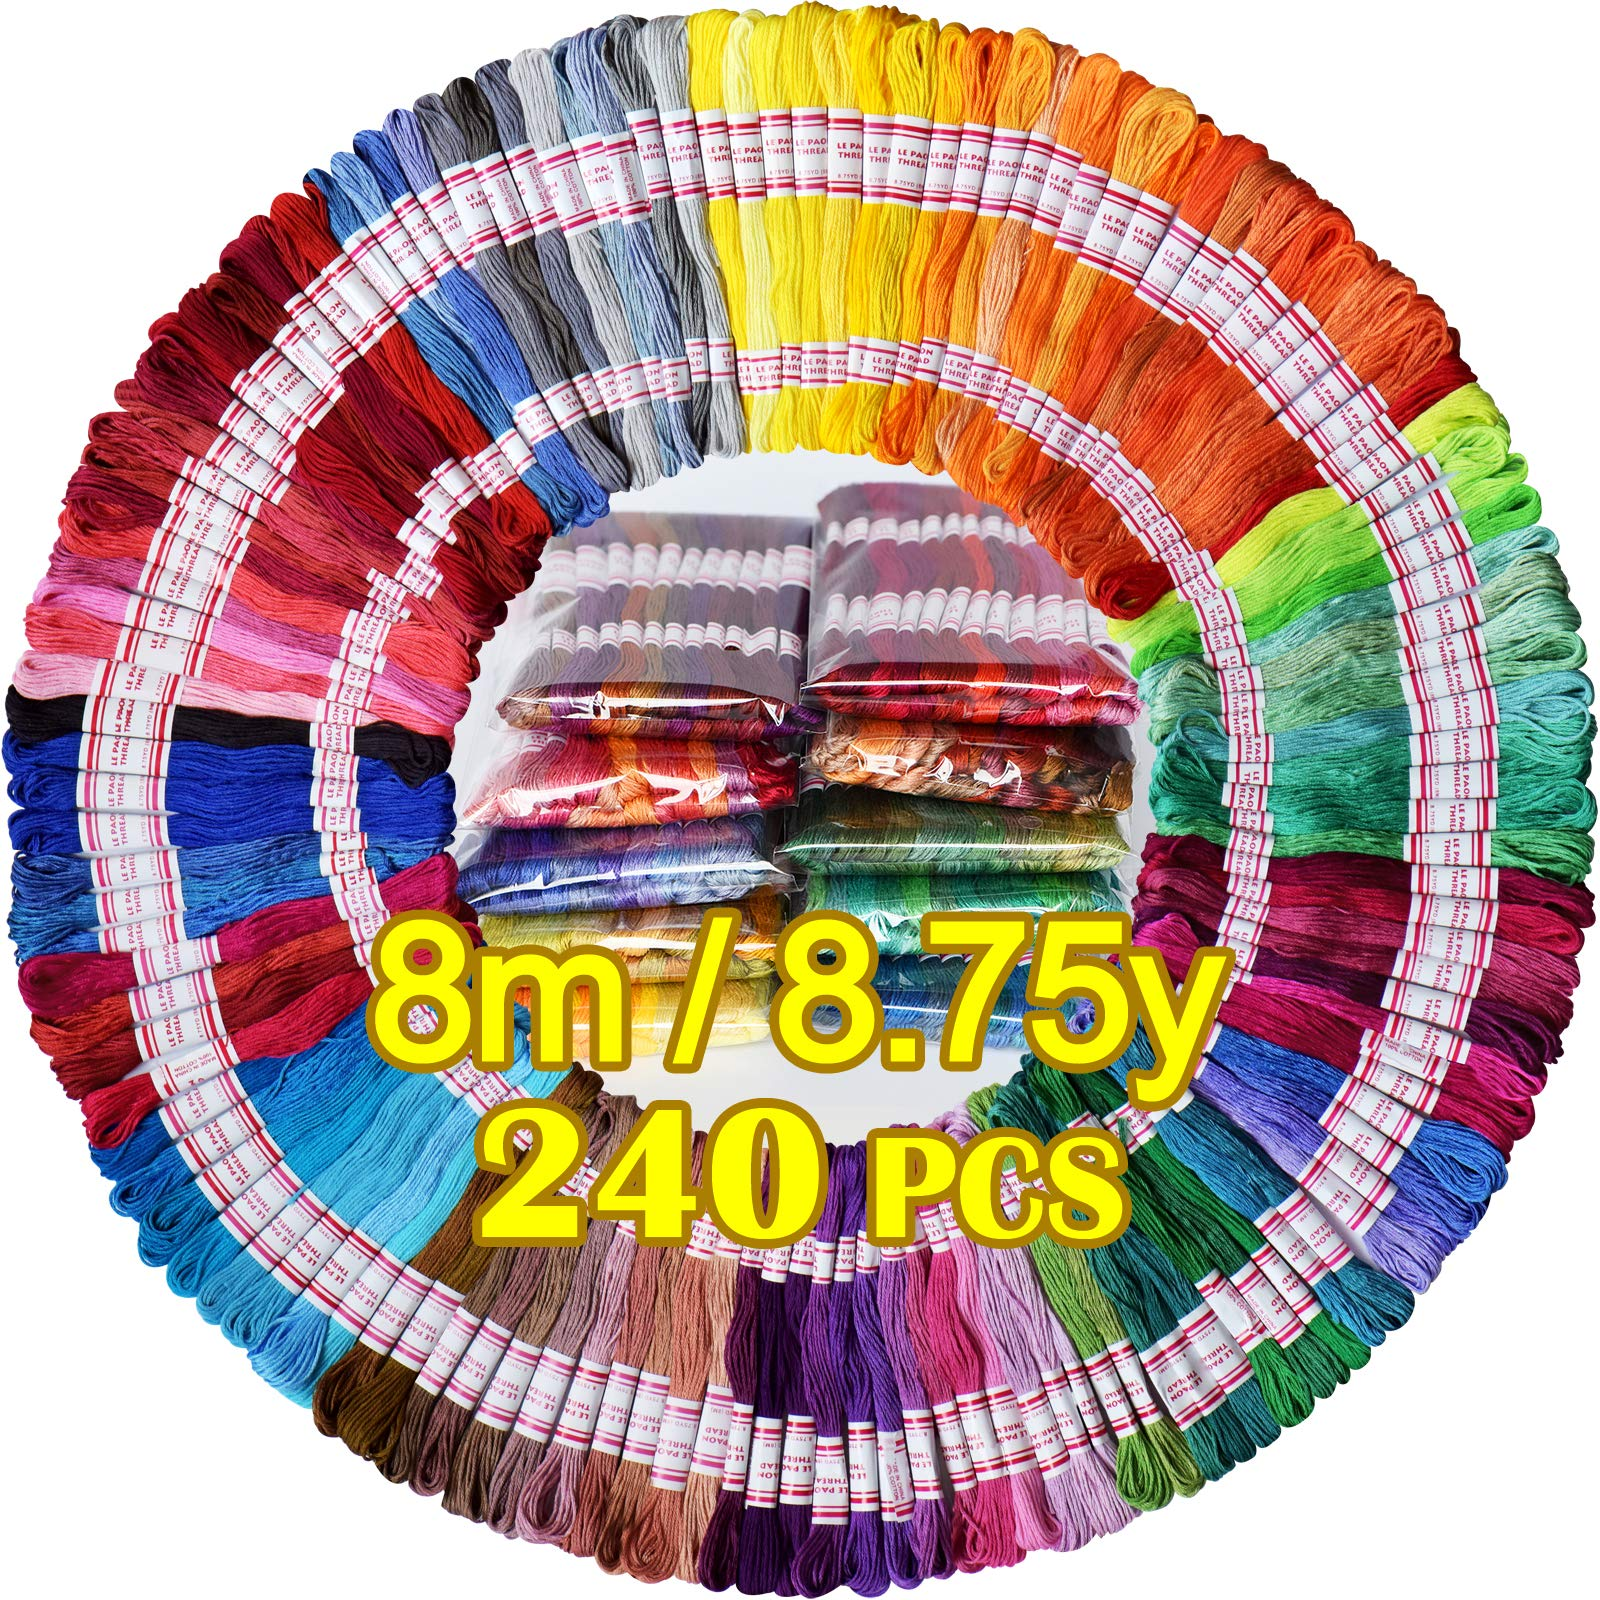 Embroidery Floss 240 skeins 100% Egyptian long-staple cotton Cross Stitch Threads -Friendship Bracelets String -Mercerized Crafts Floss total 1920M 8M/pc 24pcs/bag 10package